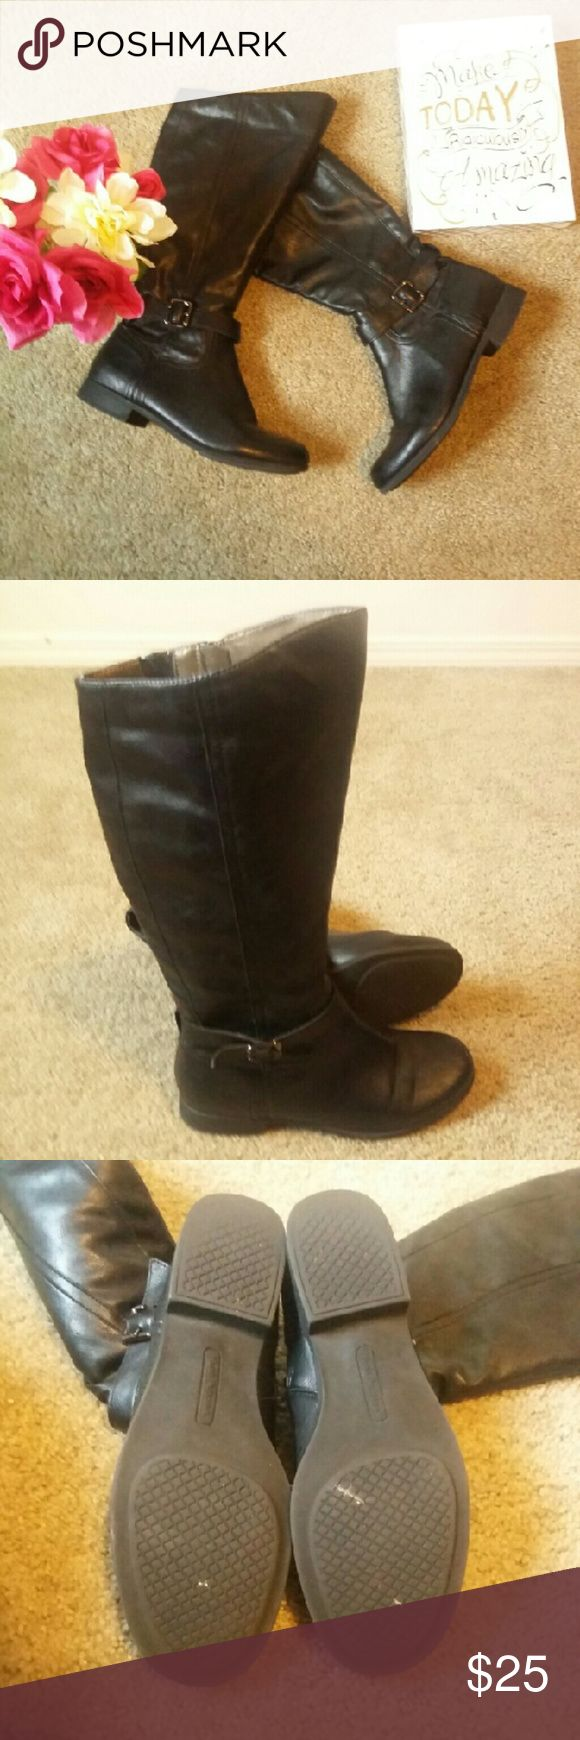 Hush Puppies Black Boots Excellent preloved Hush Puppies Black Boots in size 8.   Approximate sole lenth: 10.25 ins Approximate heel height: 1in Approximate boot height: 14ins Hush Puppies Shoes Heeled Boots